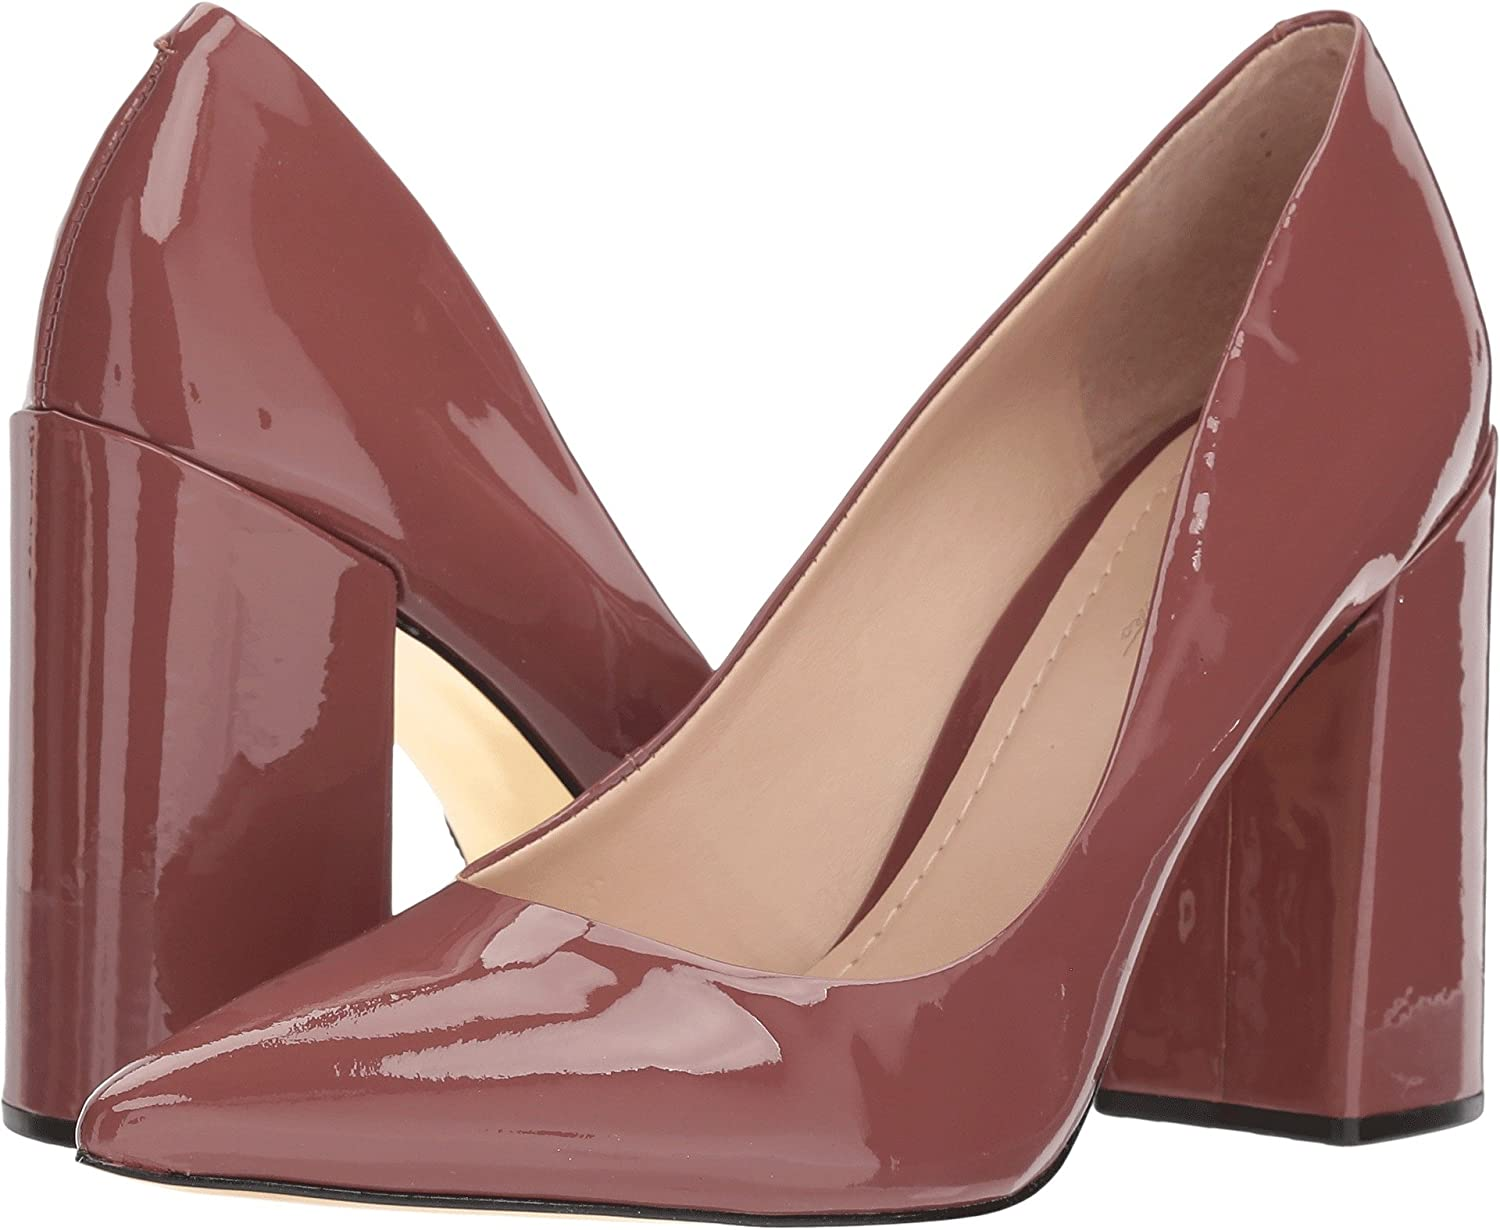 Massimo Matteo Womens Block Heel Pump B075ZYCJ62 6 B(M) US|Dusty Rose Patent